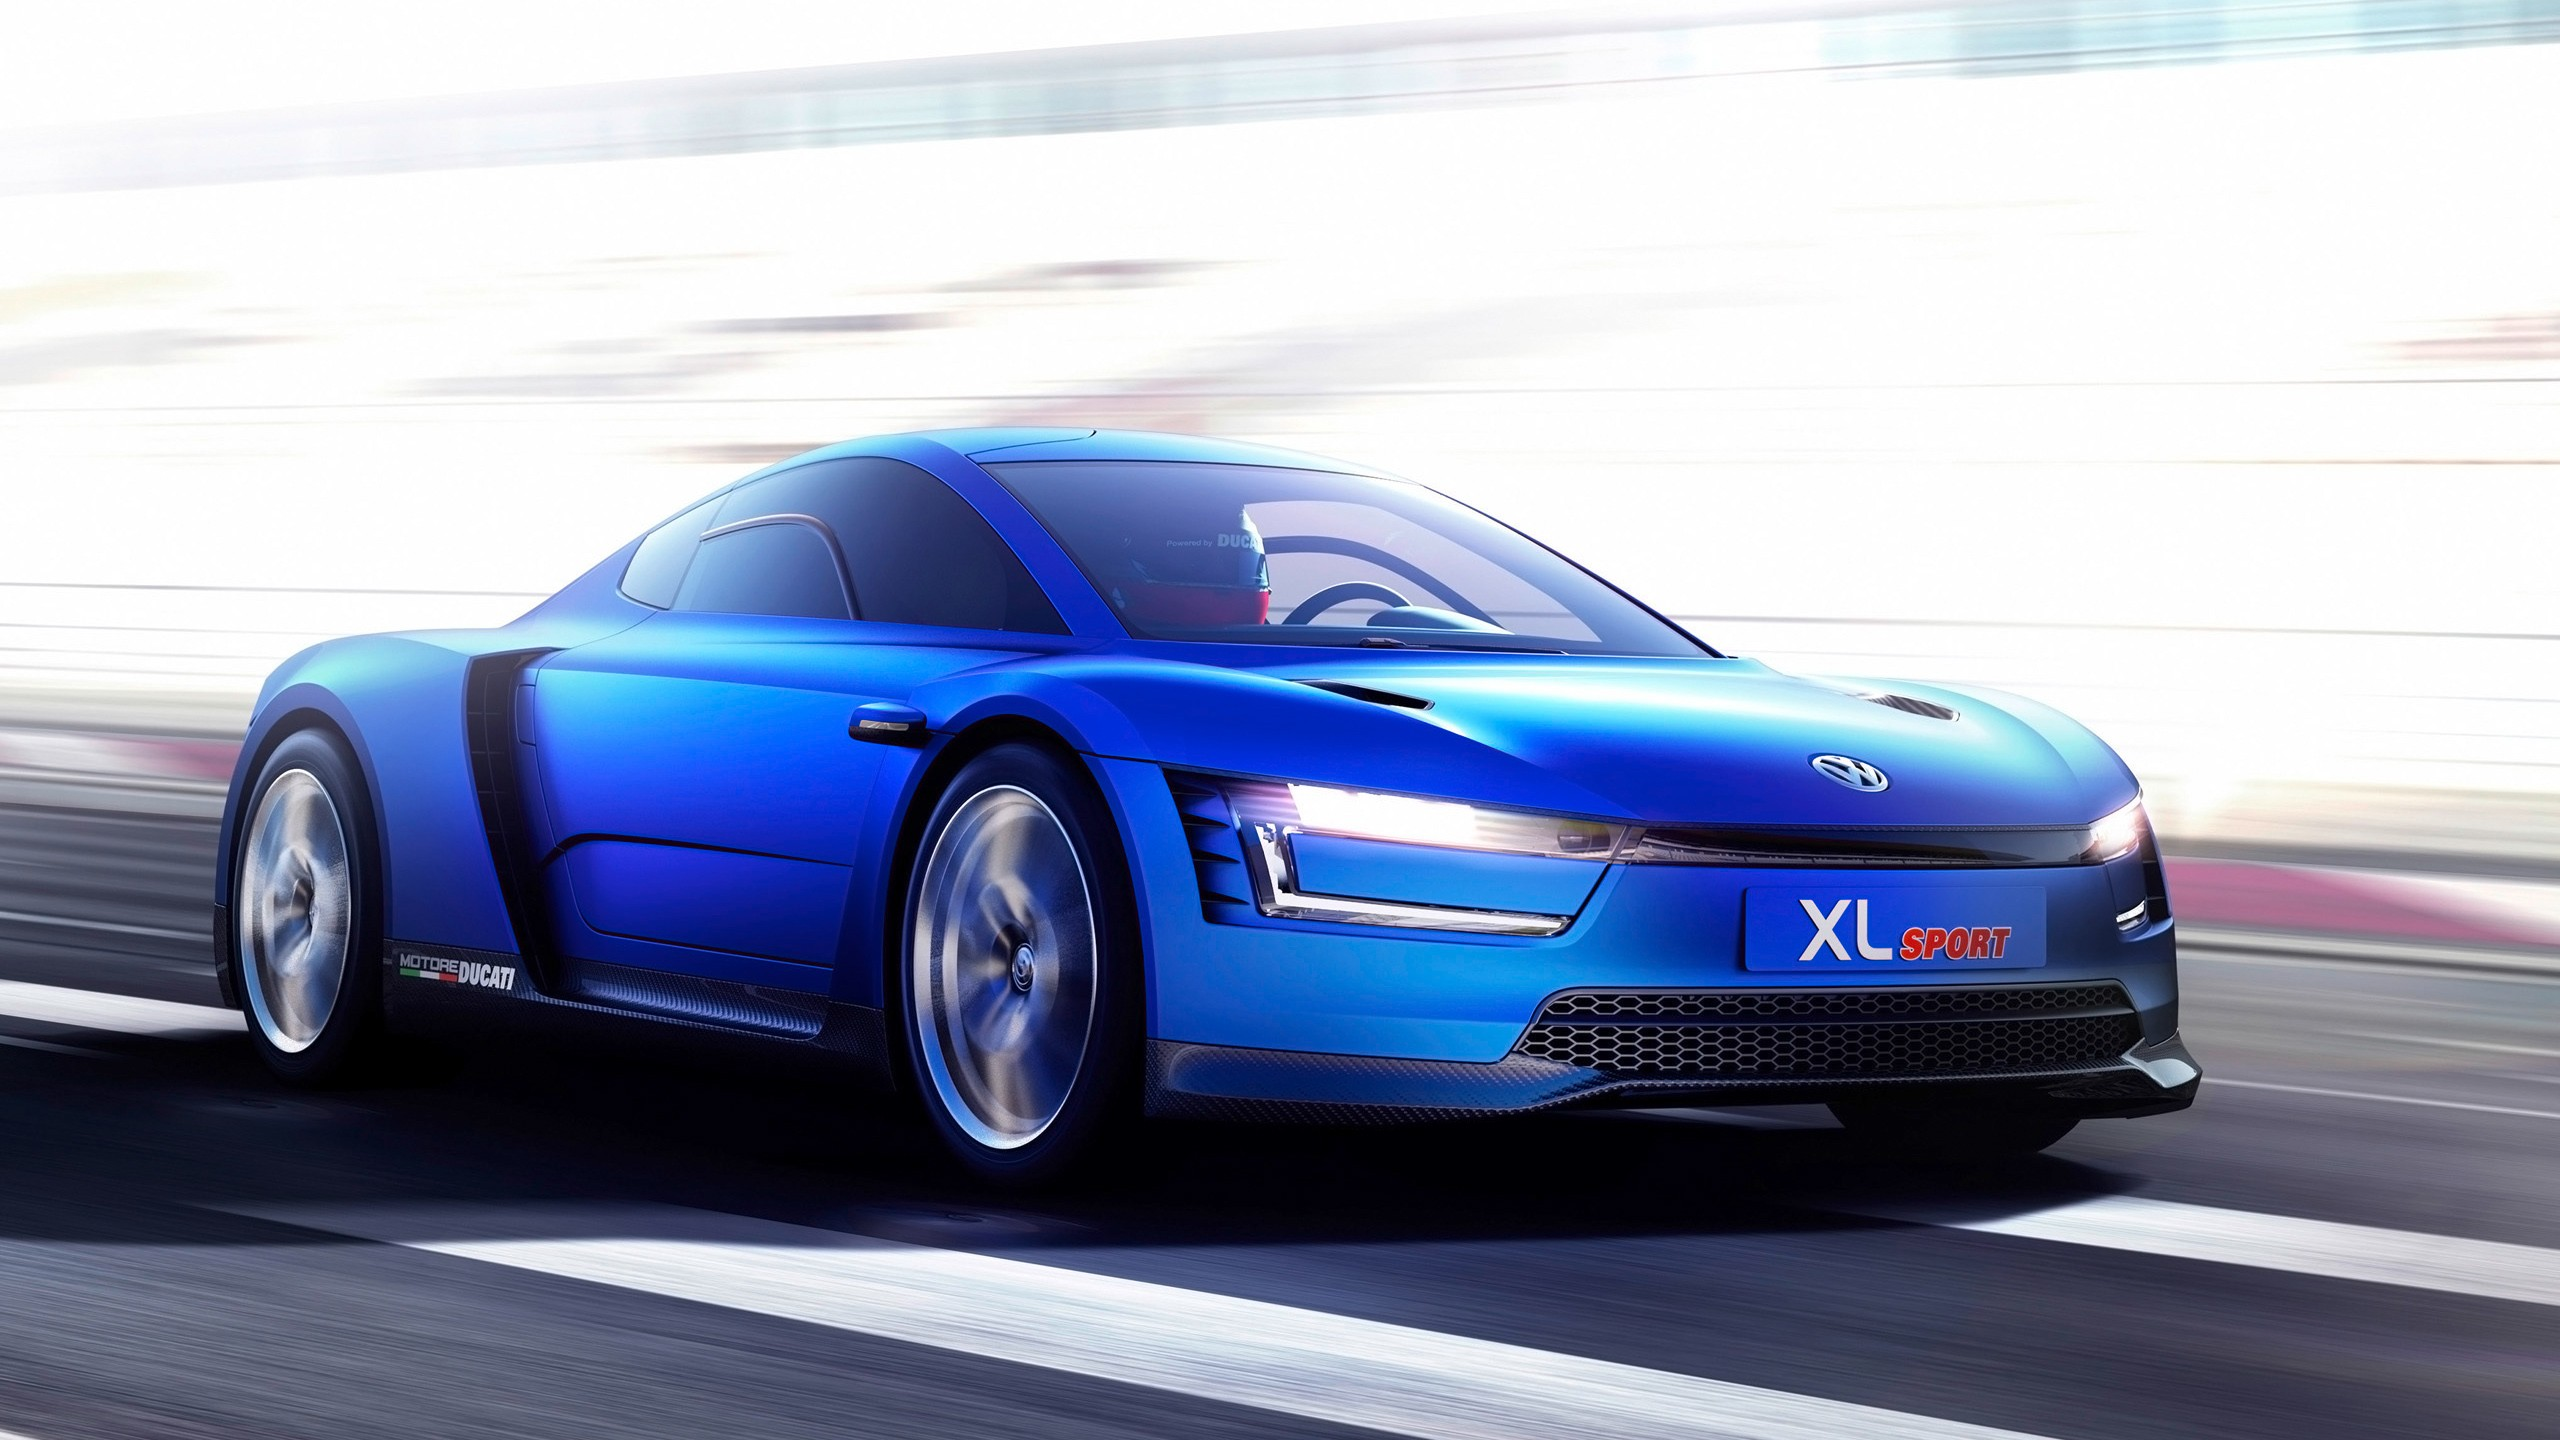 2014 Volkswagen Xl Sport Concept Wallpaper Hd Car